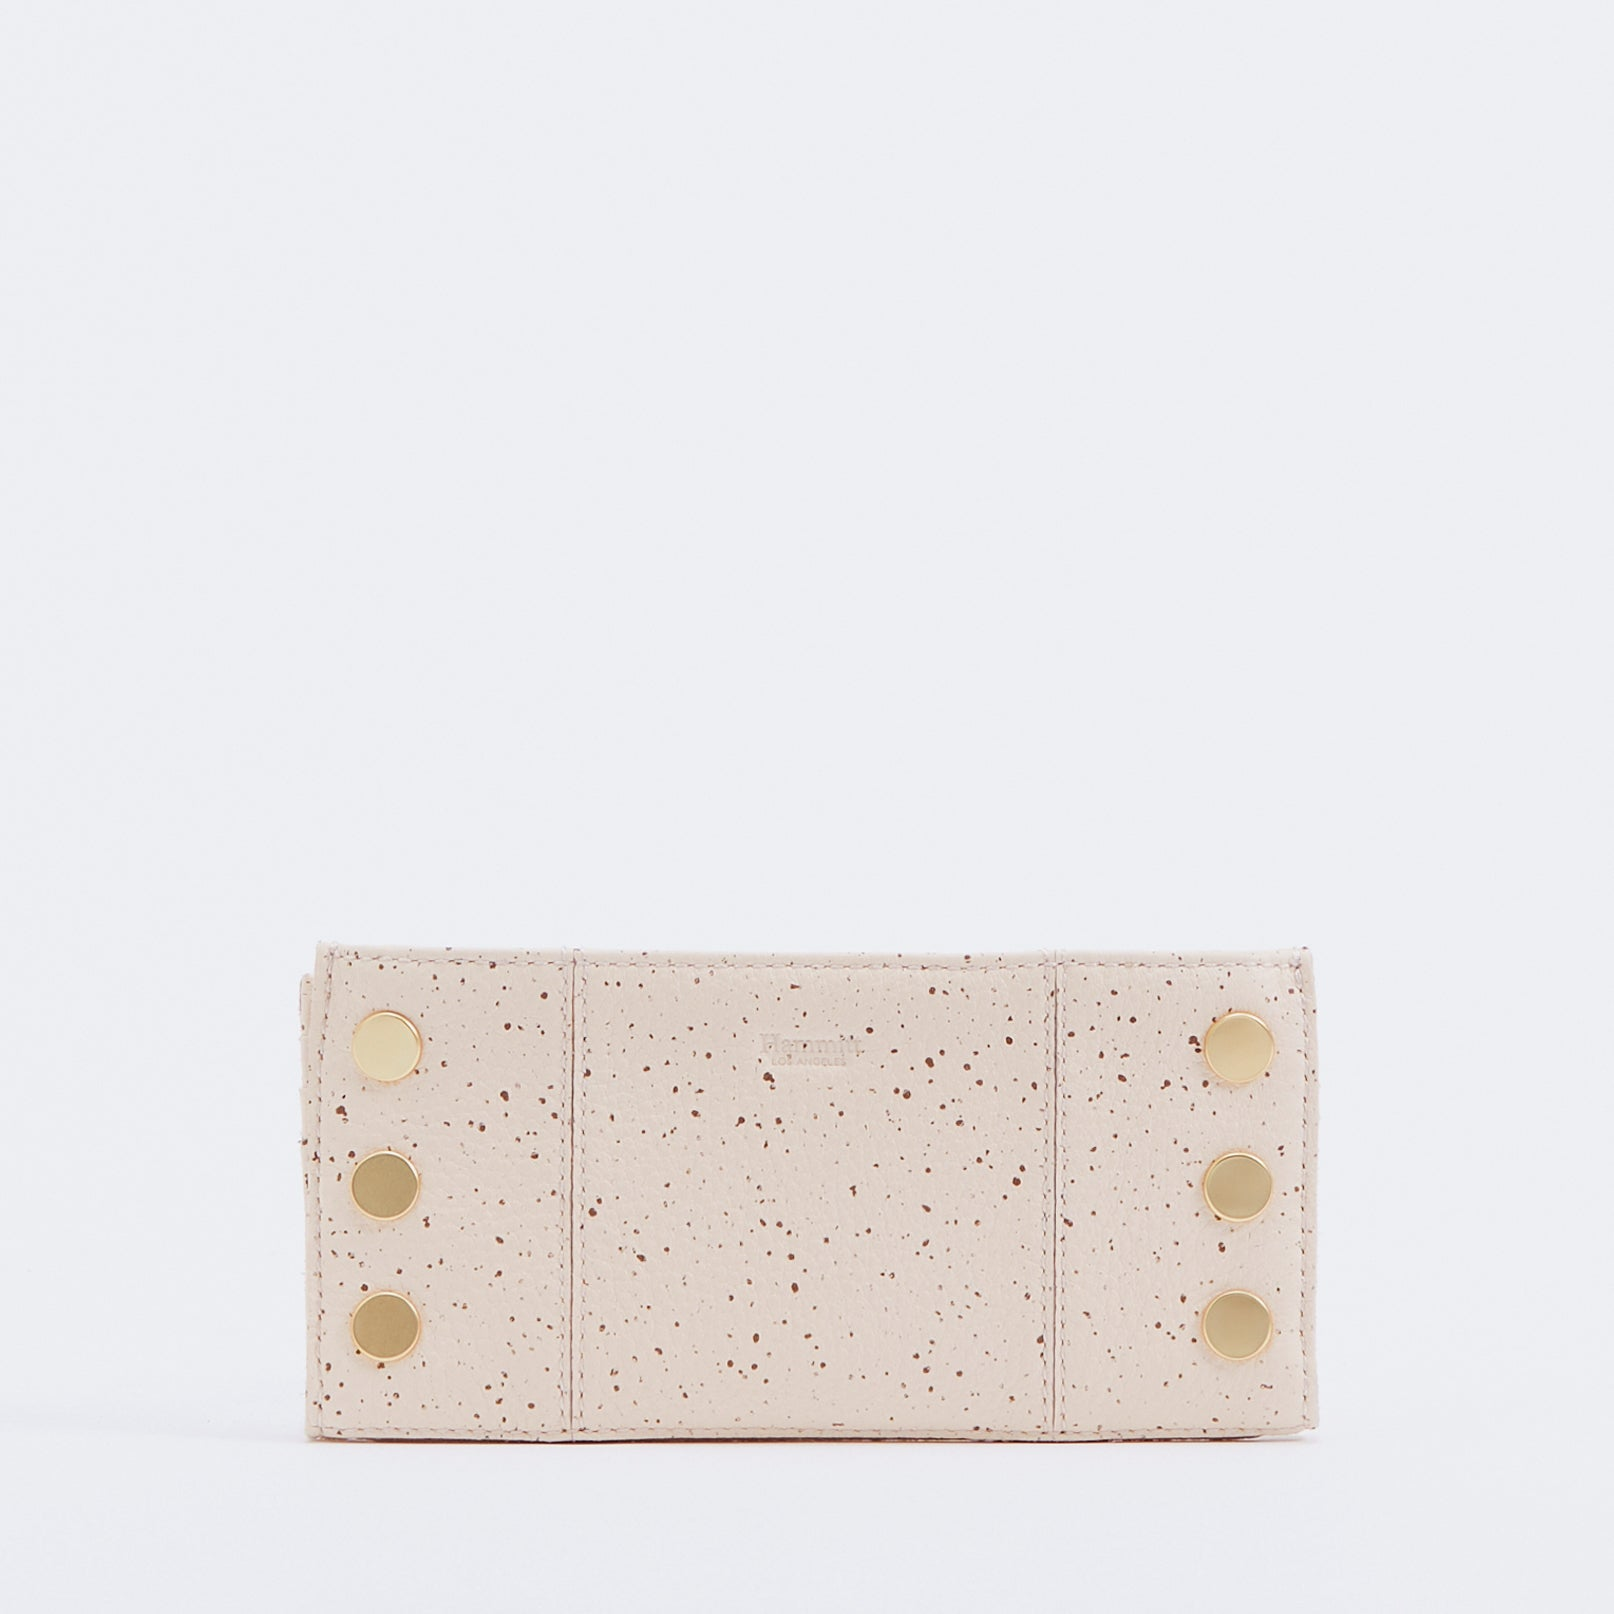 110-North-Speckle-Glaze-Cream-Front-View